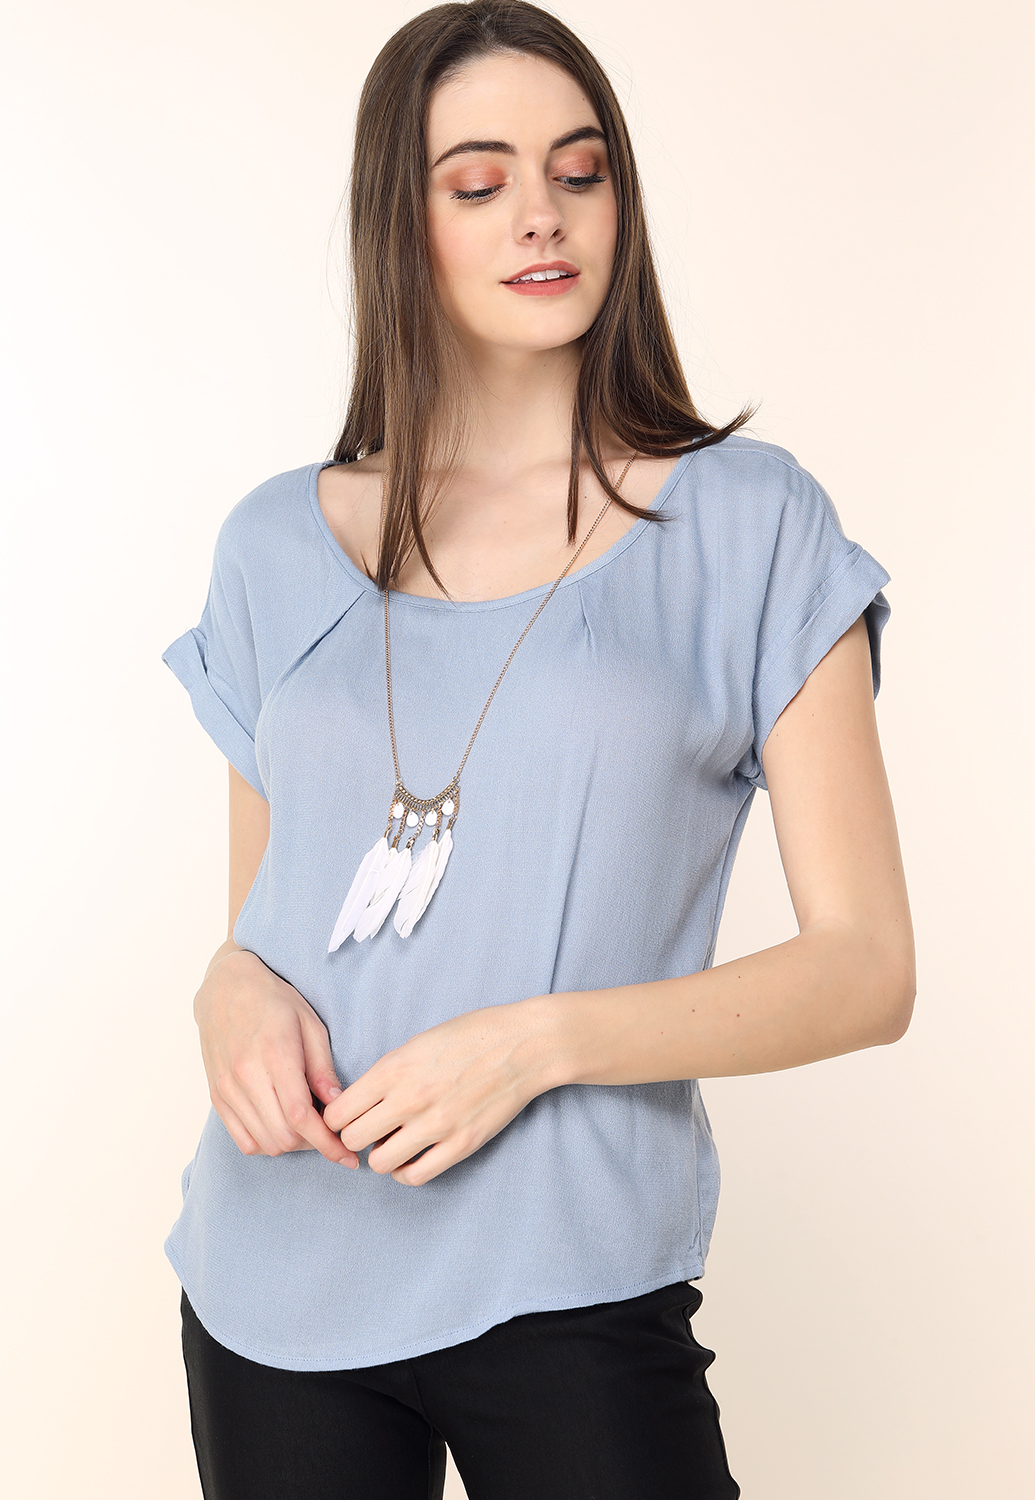 Dressy Top W/ Feather Necklace